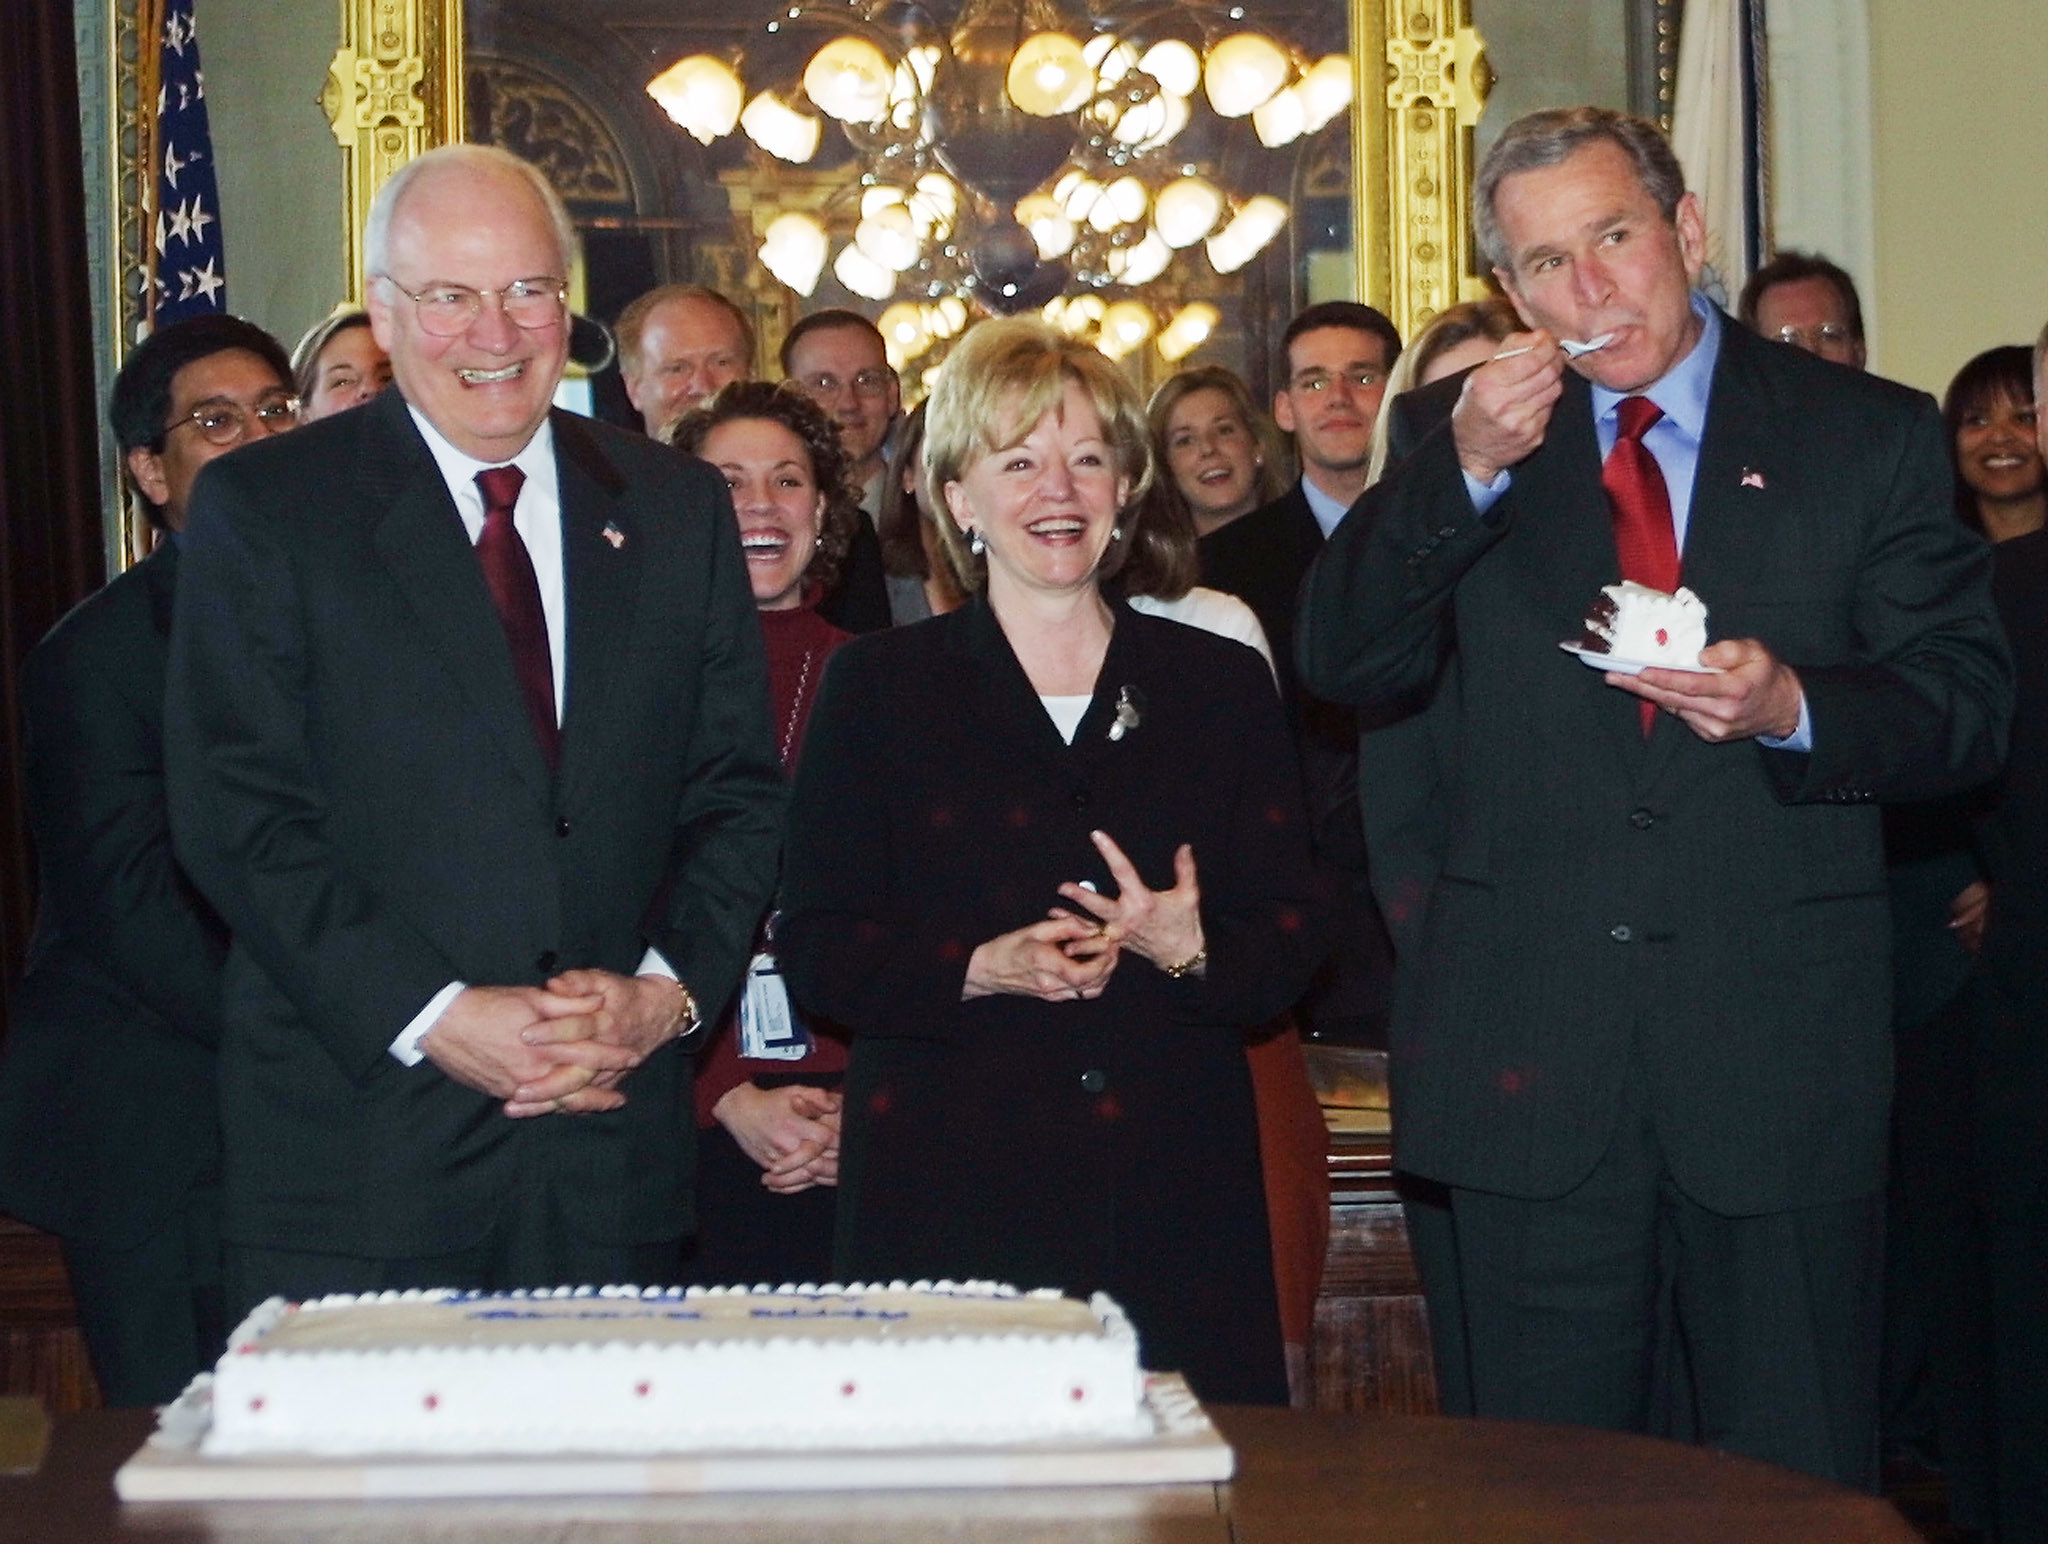 George Bush, right, eats a slice of cake in a room full of smiling people in suits